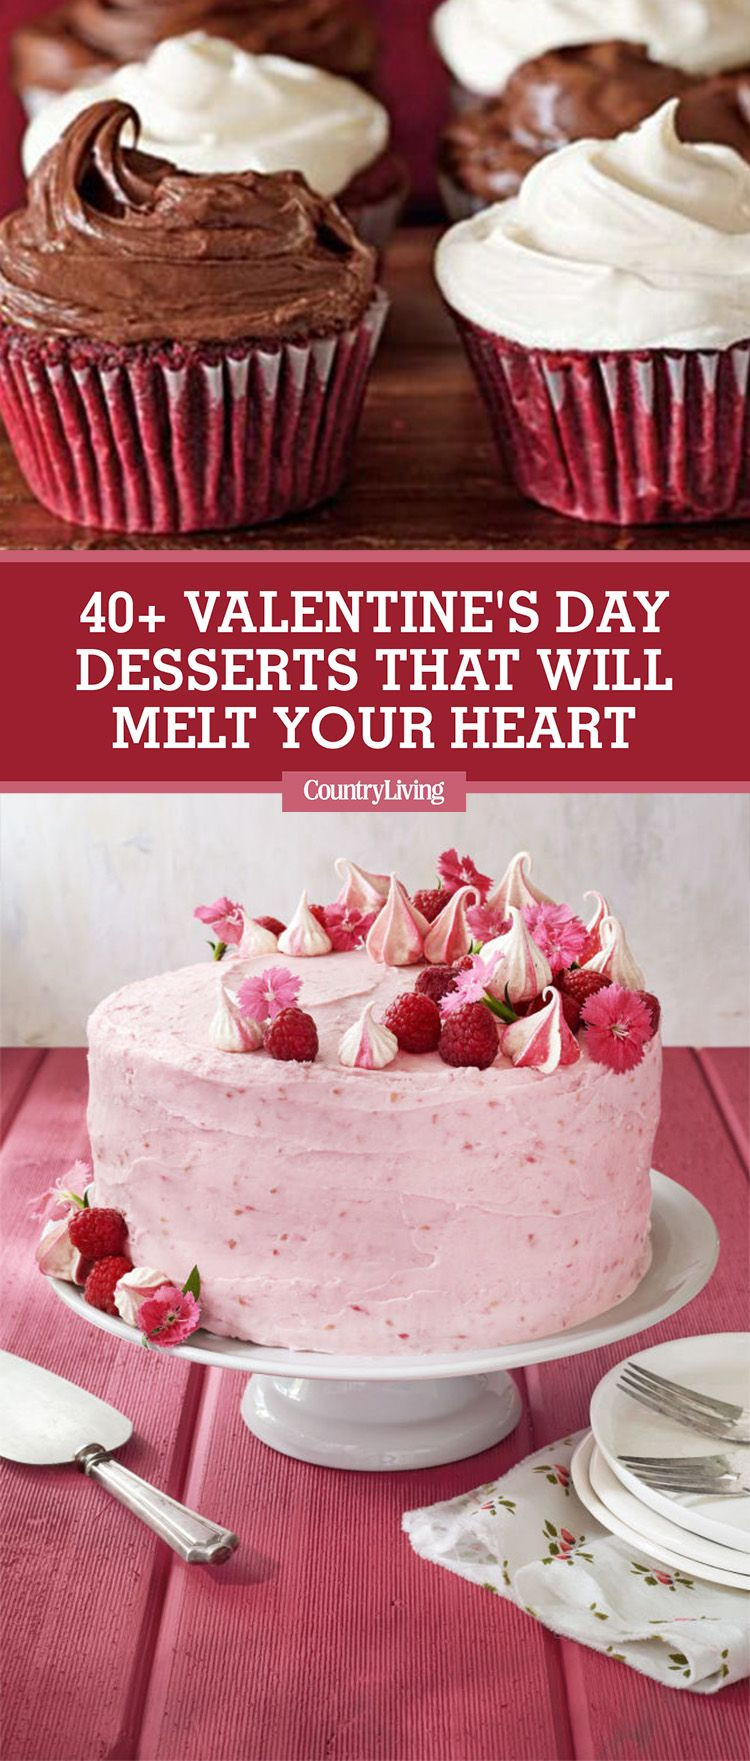 Easy Valentine'S Day Desserts  Treat Your Special Someone to the Sweetest Desserts This